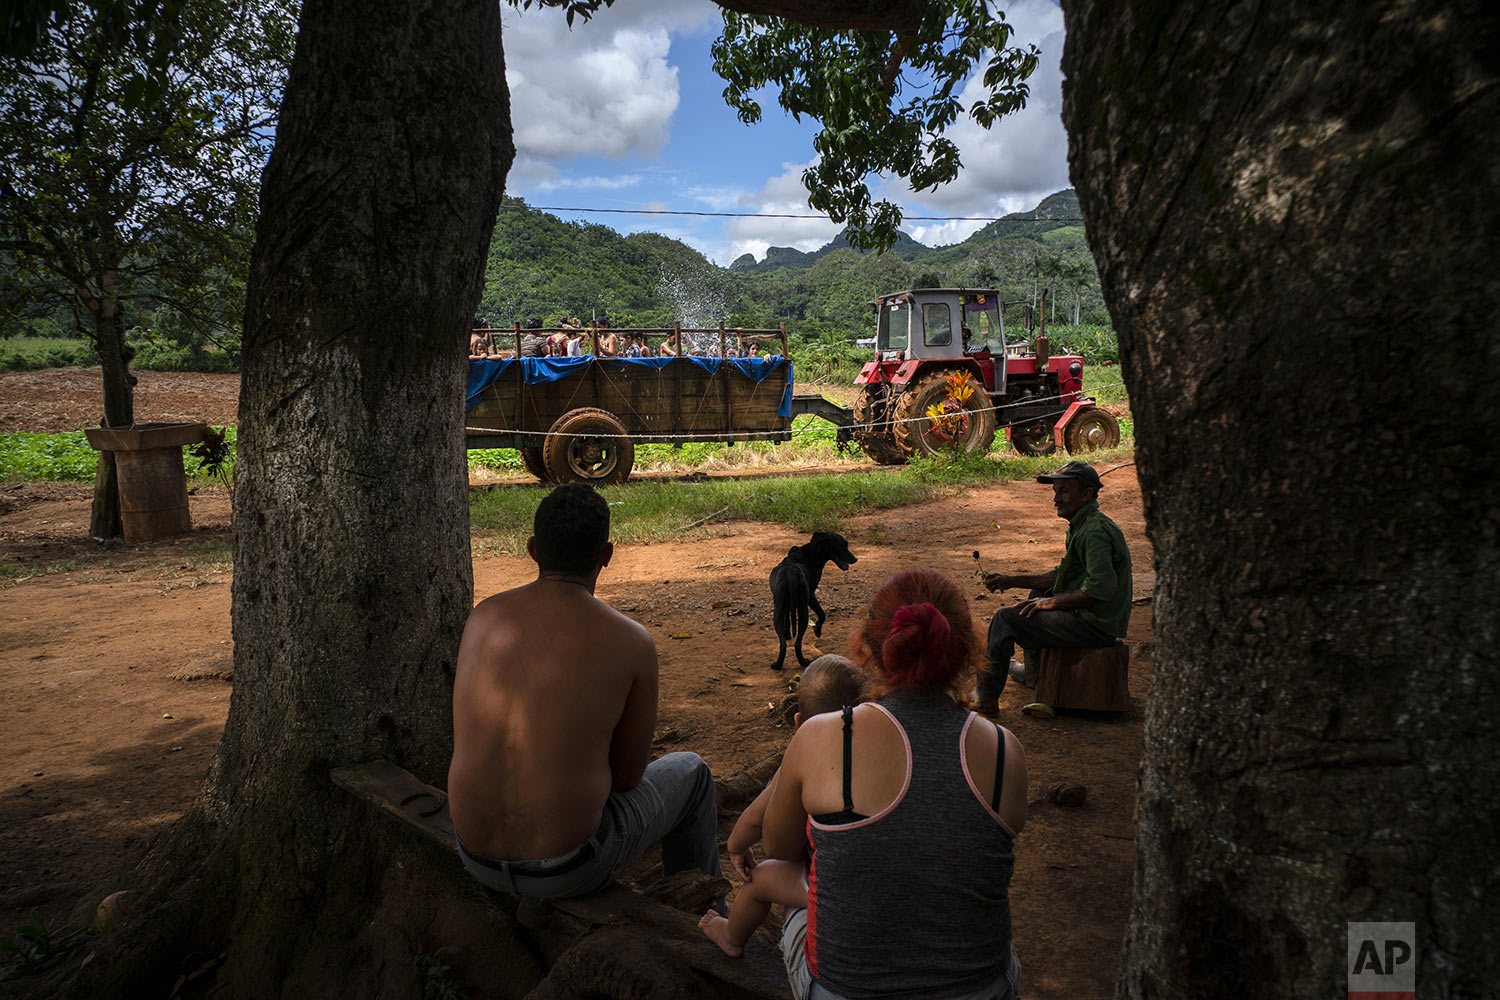 In this Aug. 24, 2019 photo, a family sitting in the shade watches as a tractor that pulls a trailer-turned-pool where children swim, drives past outside their home in the El Infernal neighborhood in San Andres in the province of Pinar del Río, Cuba.  (AP Photo/Ramon Espinosa)